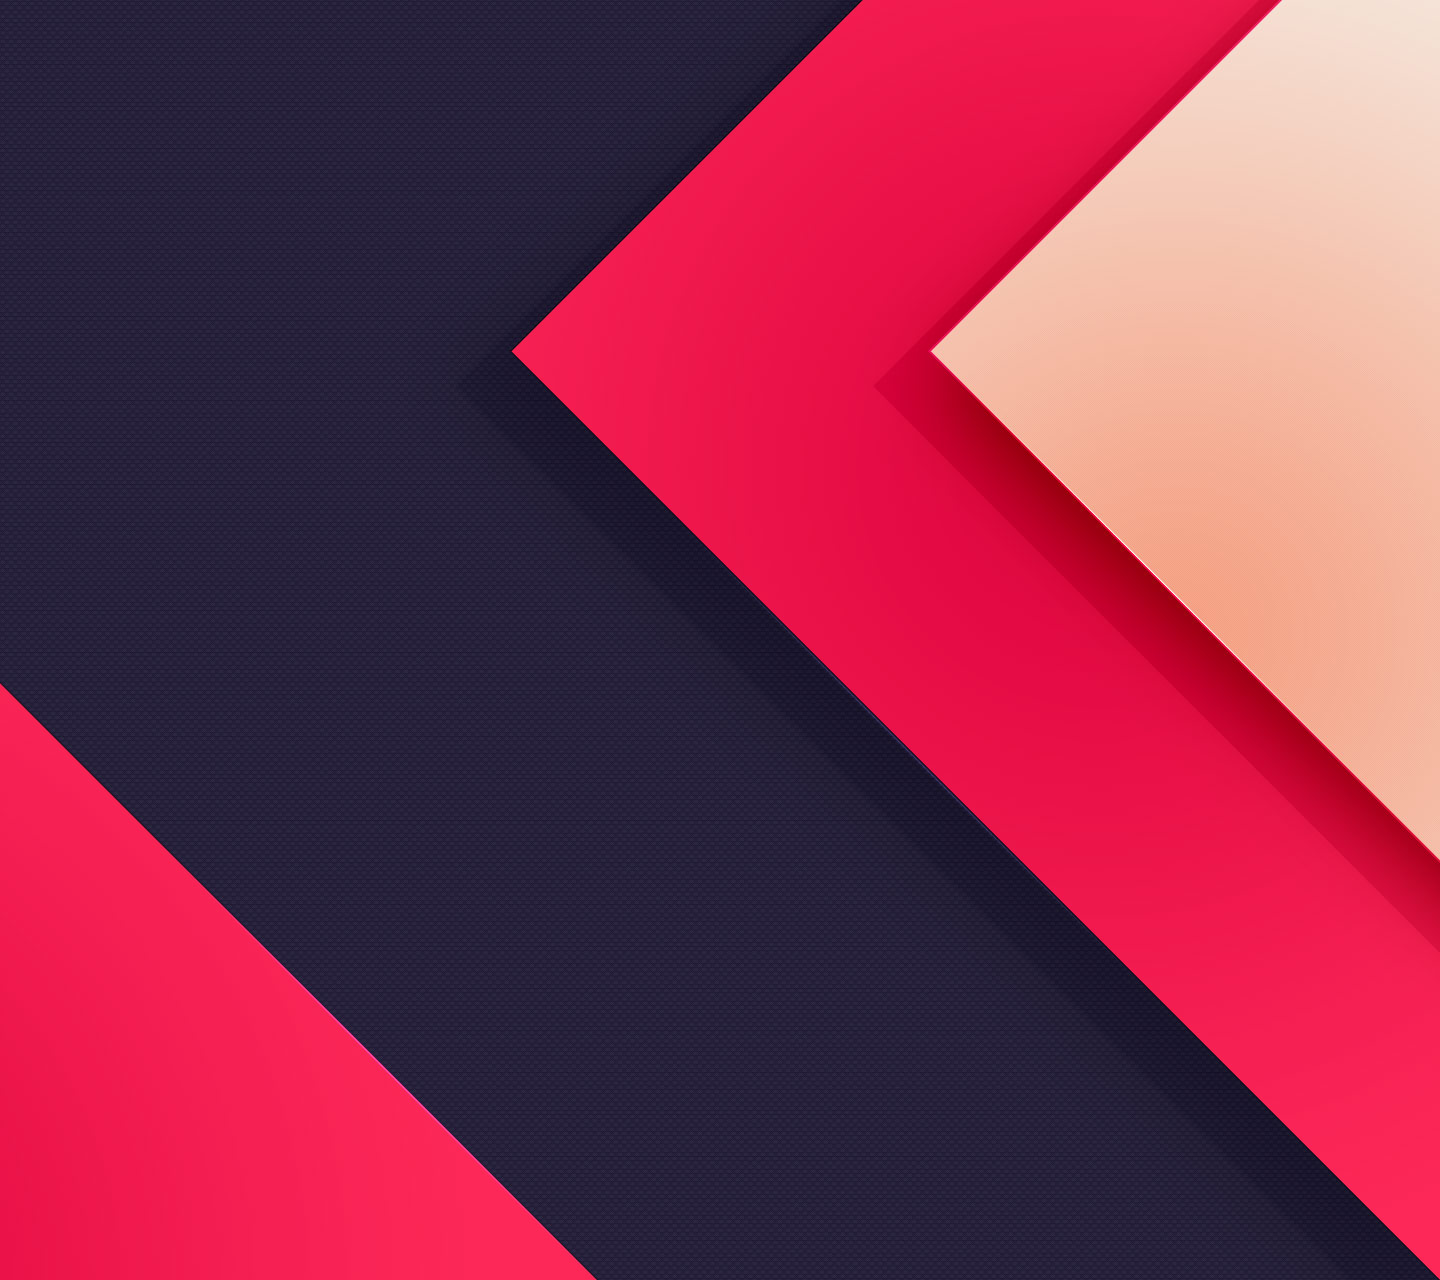 Iphone X Stock Wallpaper Xda Open Accessible Material Design Icons